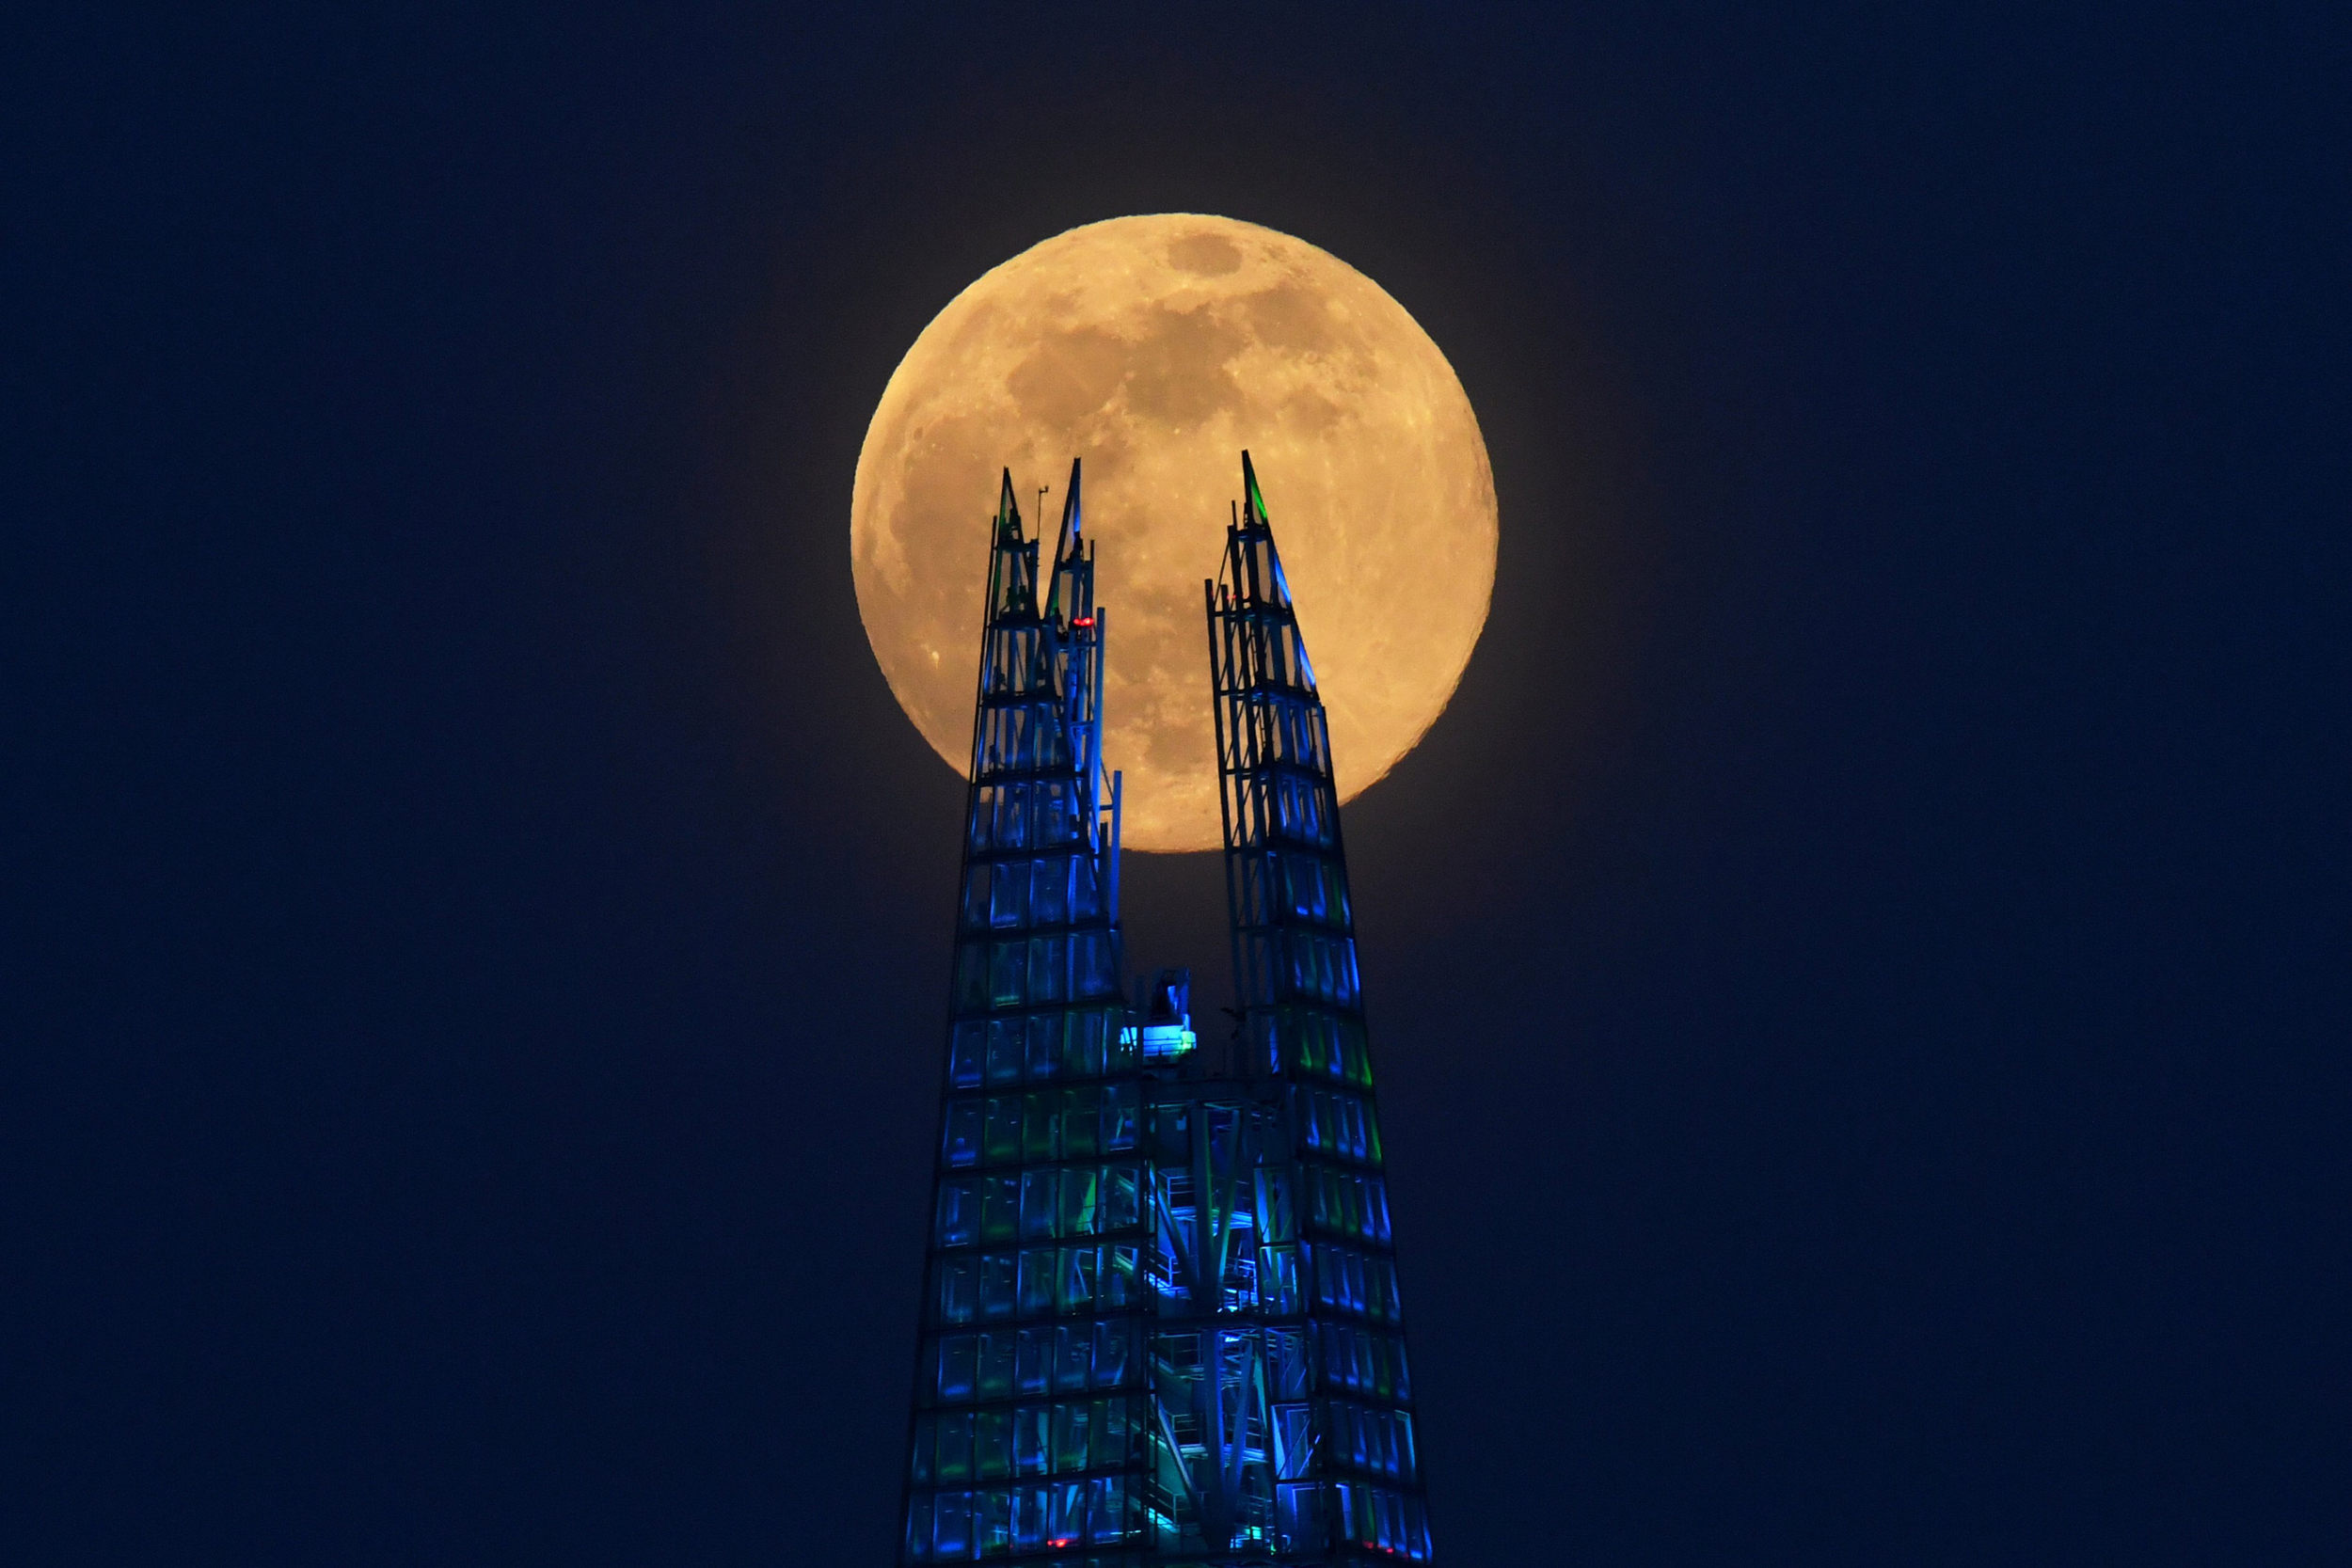 Super Moon 2020 - A Glimmer Of Happiness During The Coronavirus Pandemic